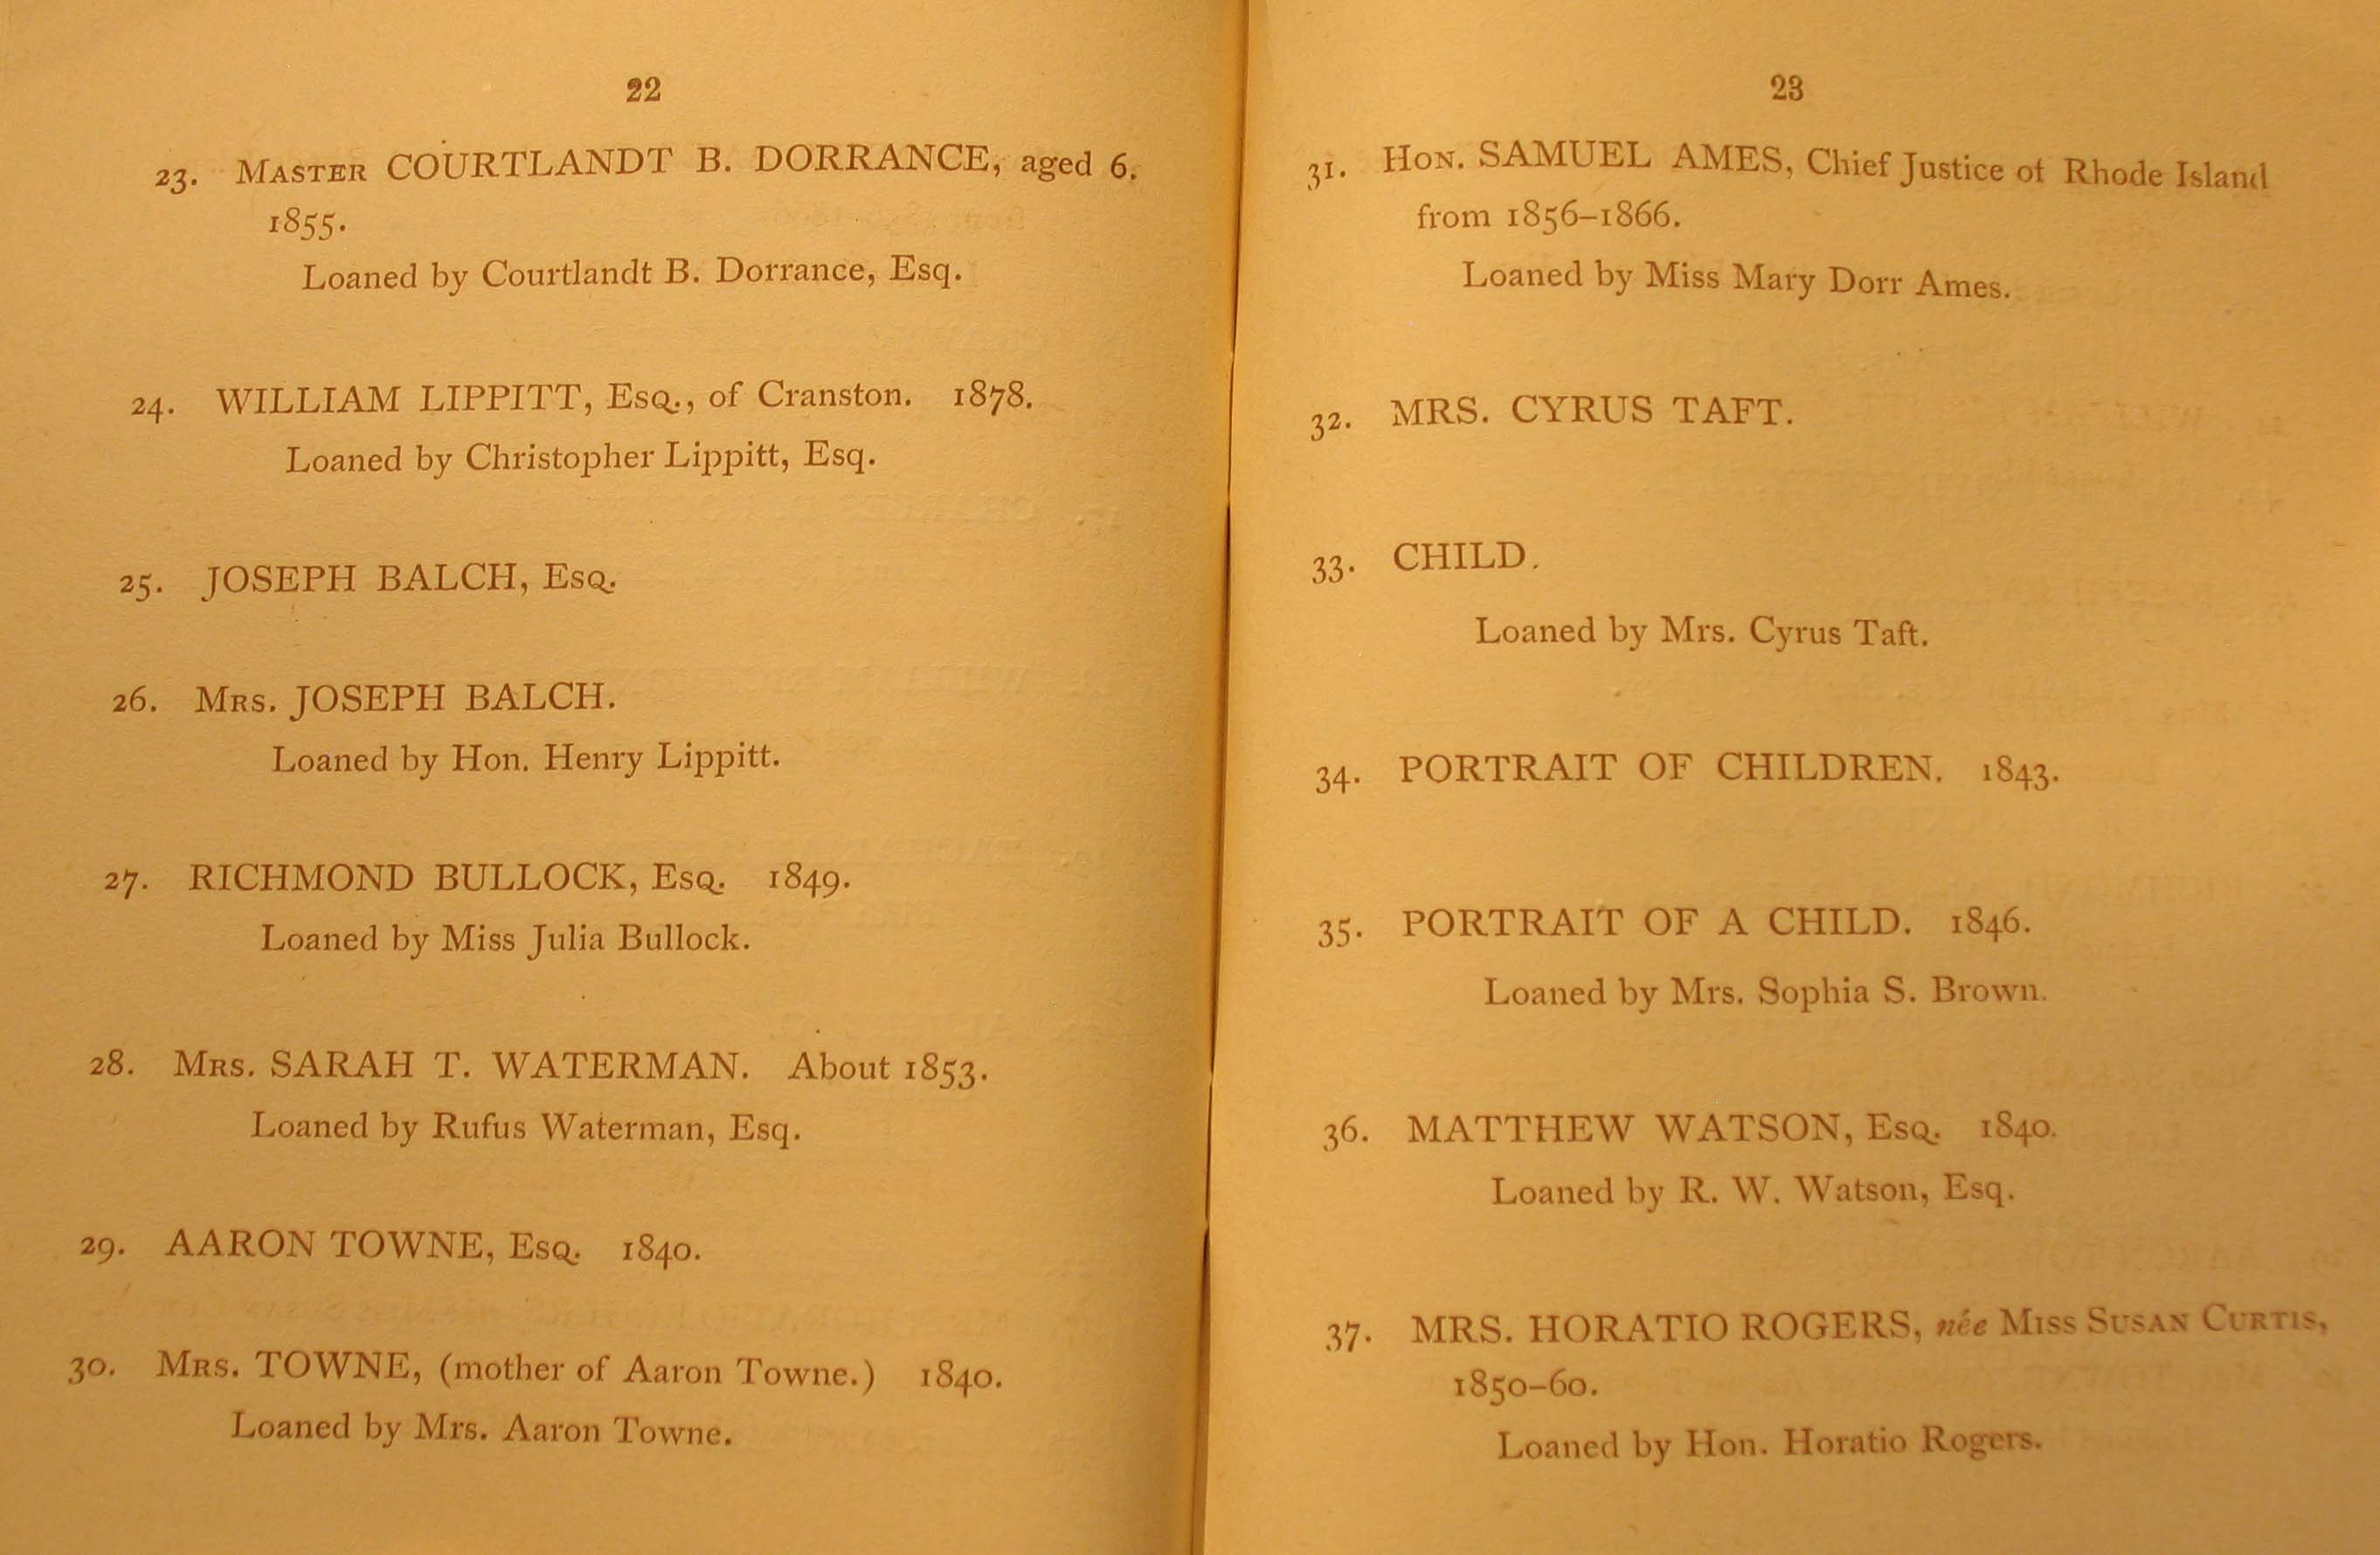 Memorial Exhibition of the works of James S. Lincoln, March 2, 1888, Providence Art Club